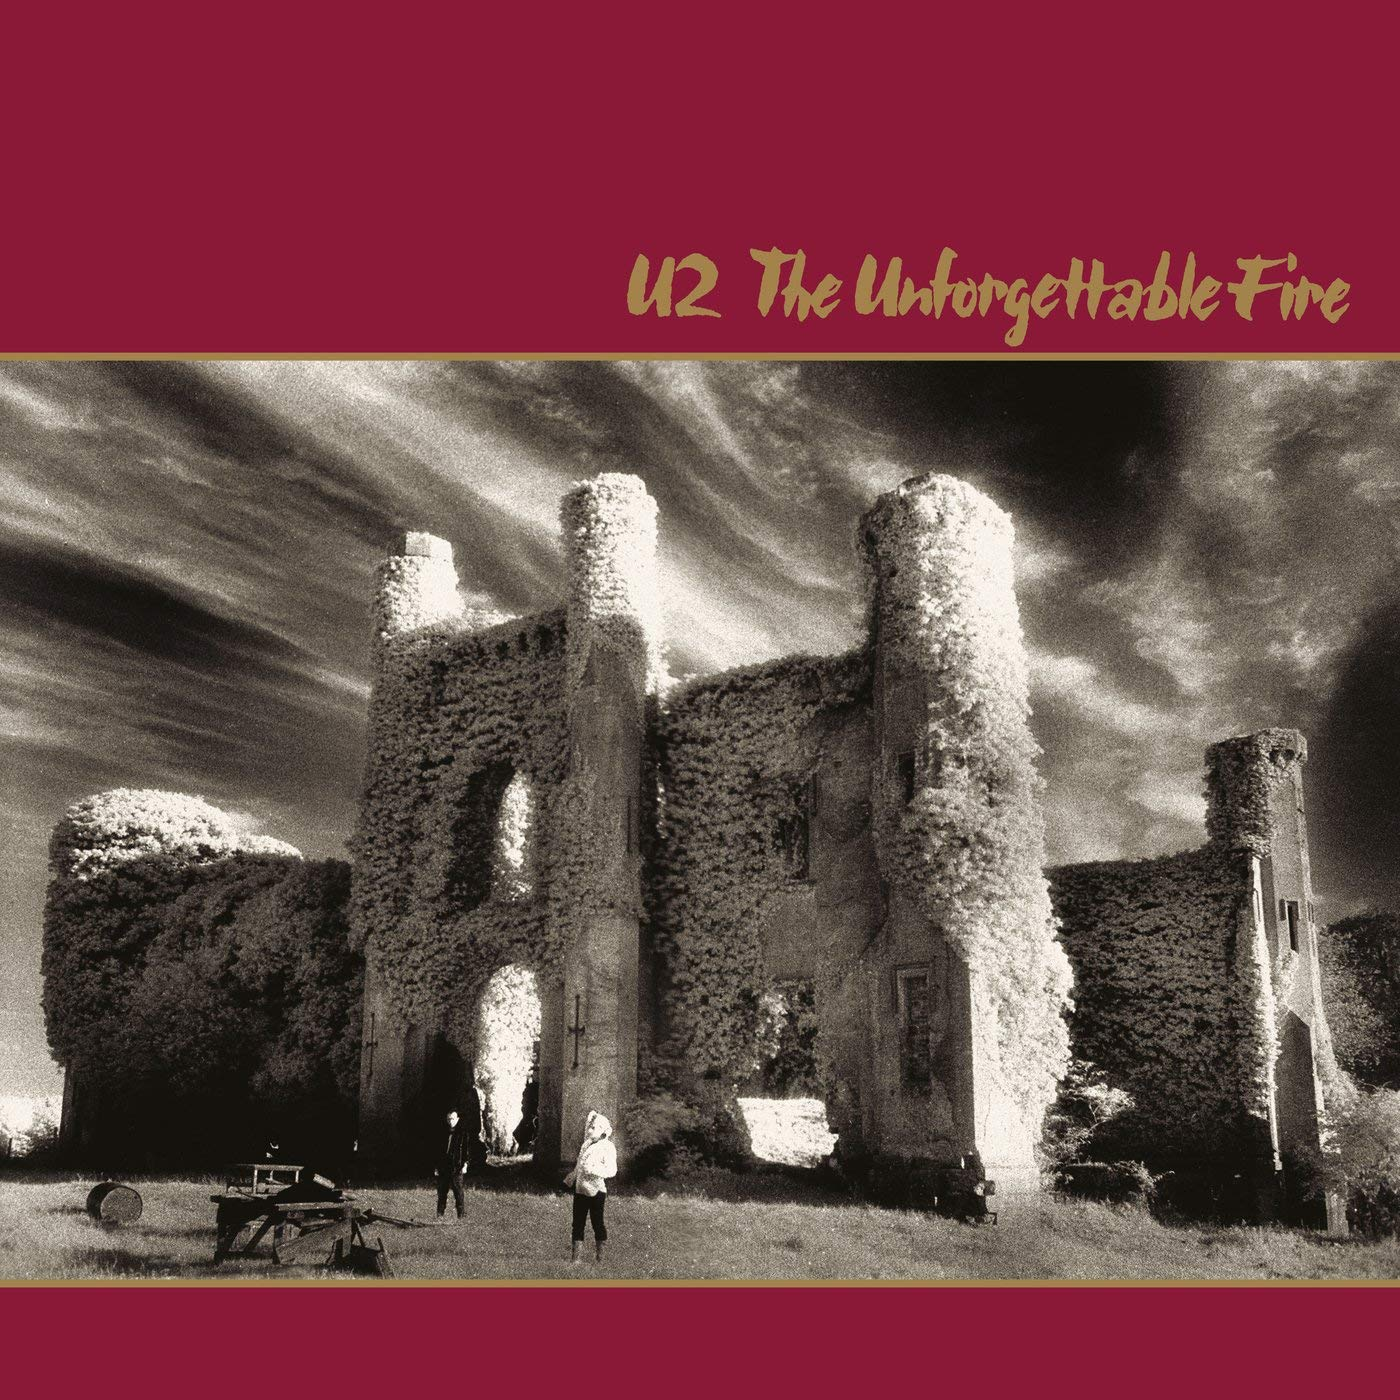 U2 The Unforgettable Fire review